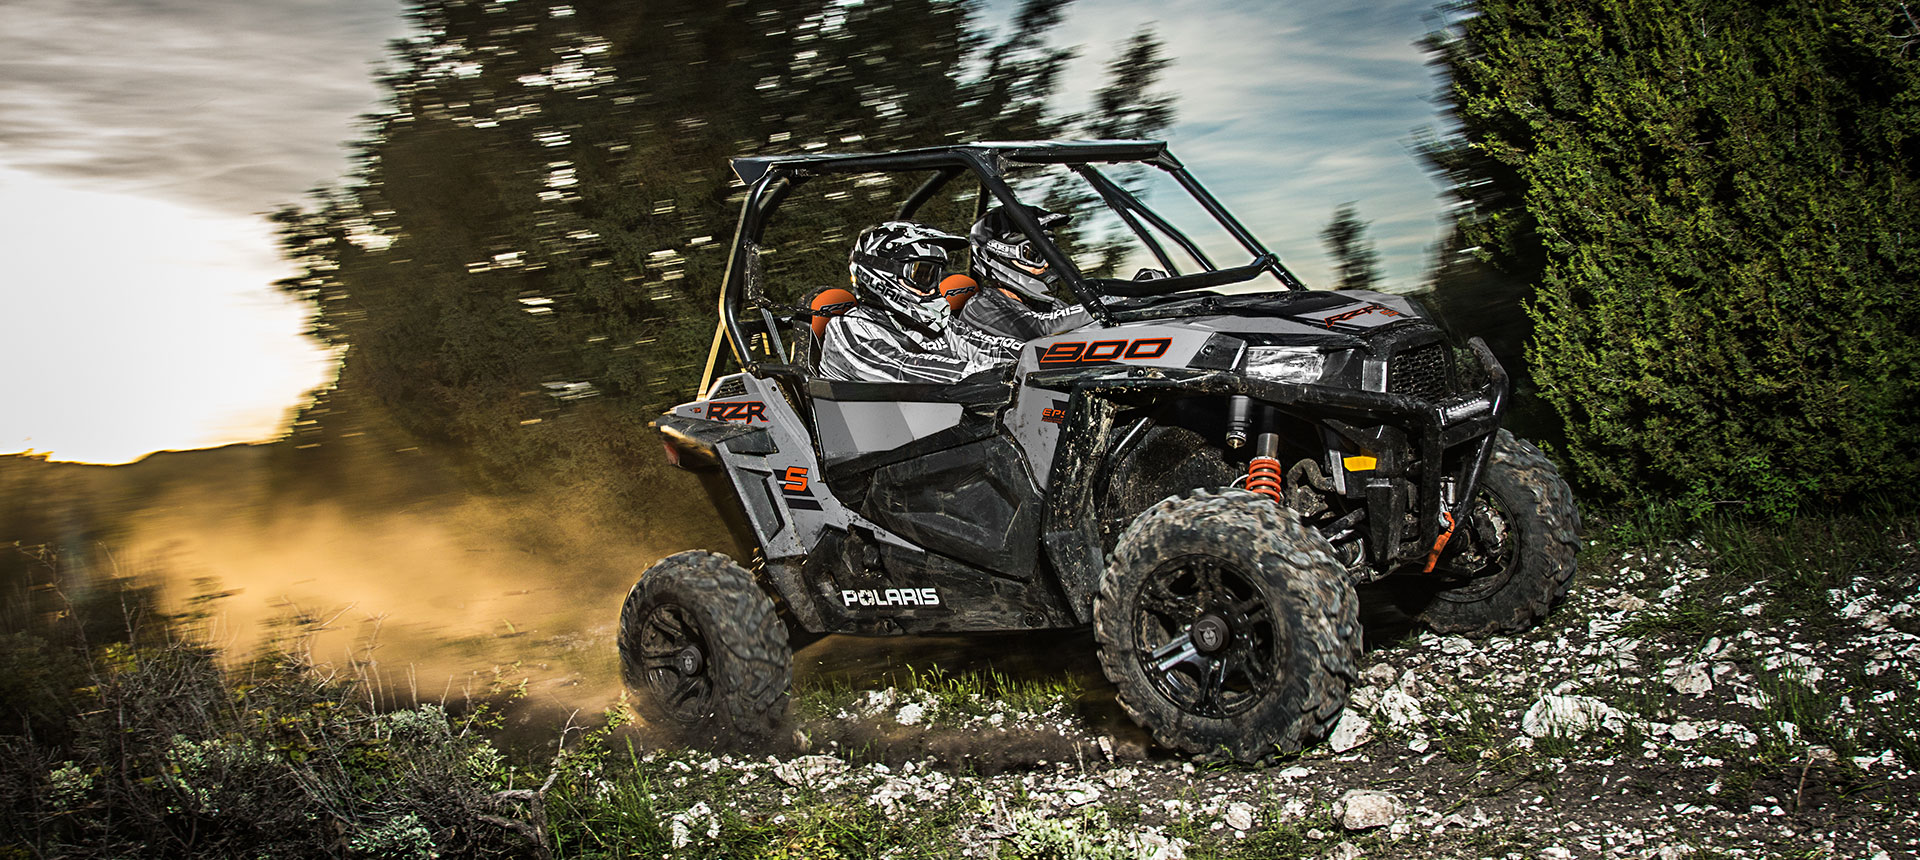 2019 Polaris RZR S 900 EPS in Albuquerque, New Mexico - Photo 6